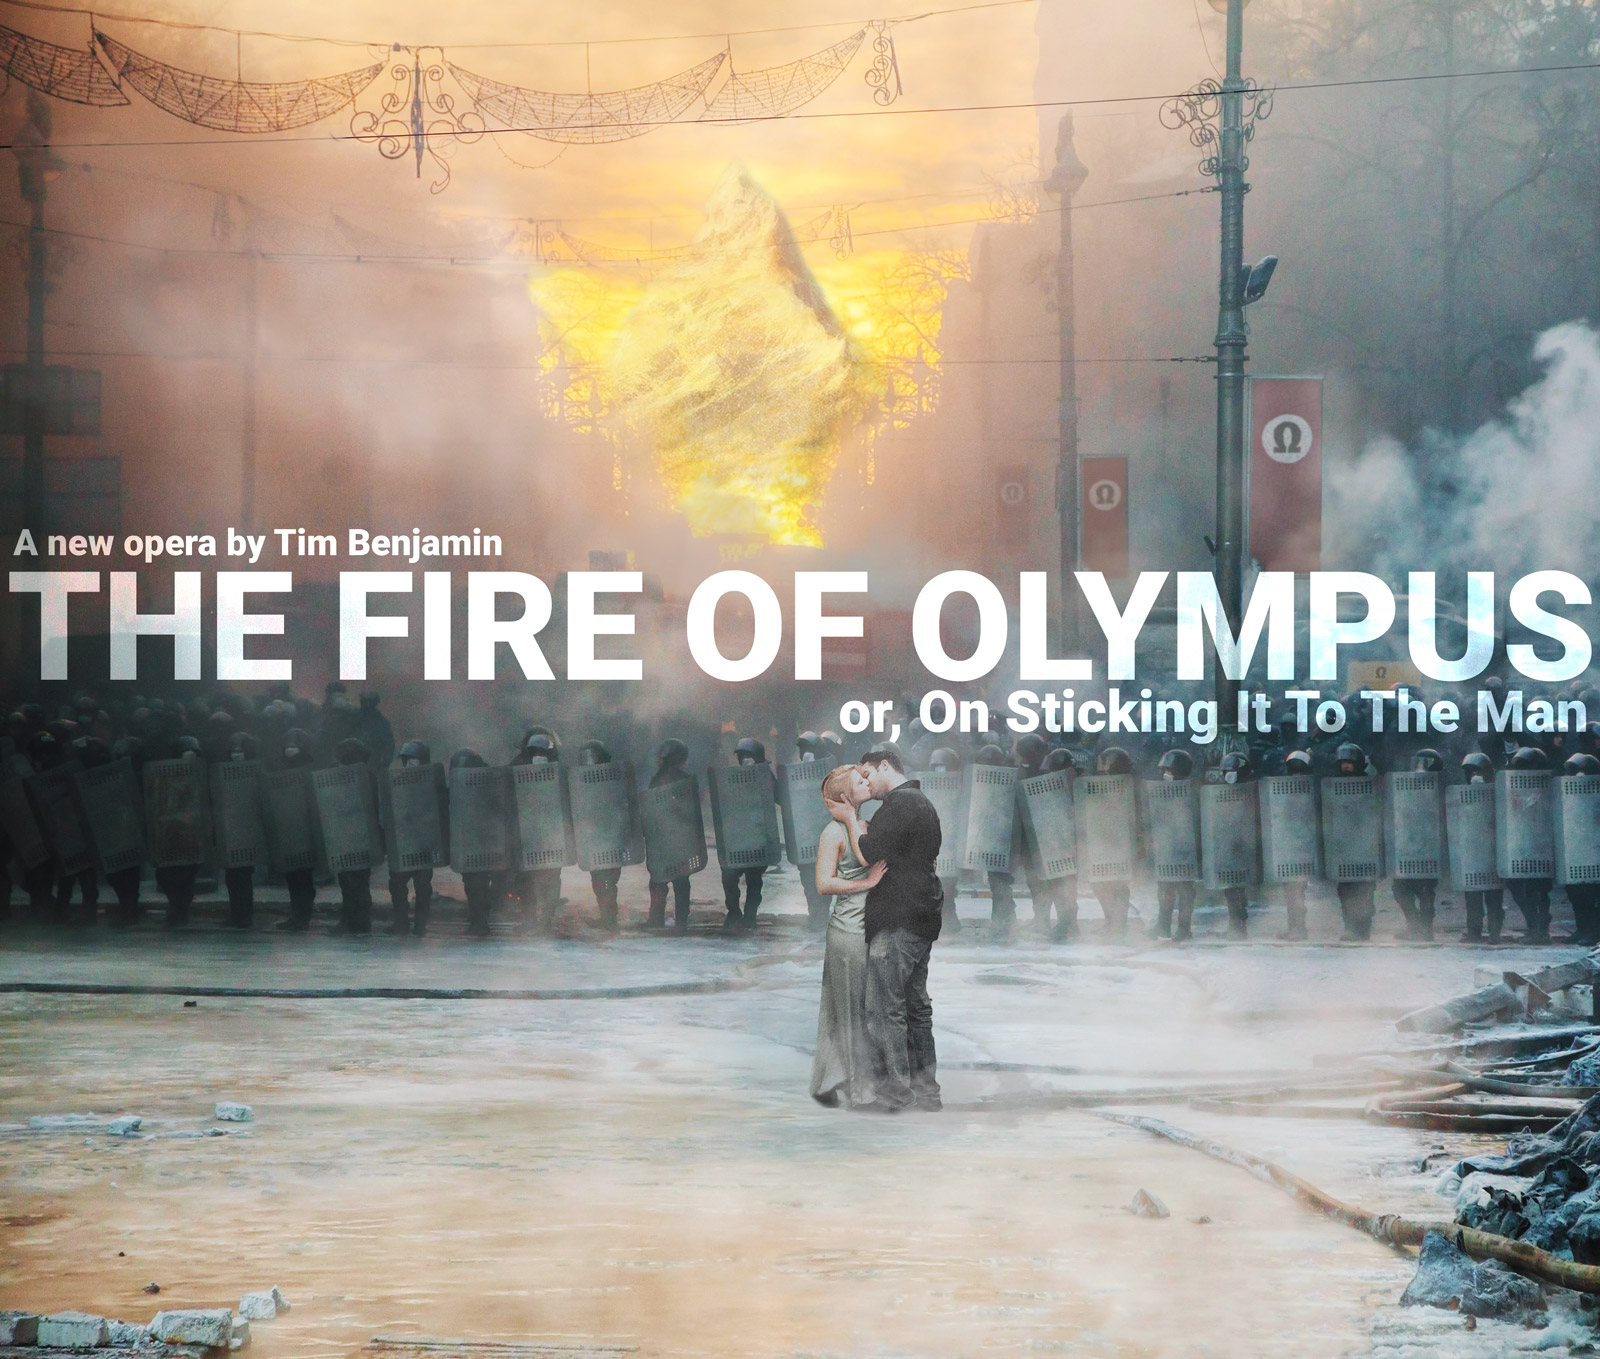 the-fire-of-olympus-poster-1600